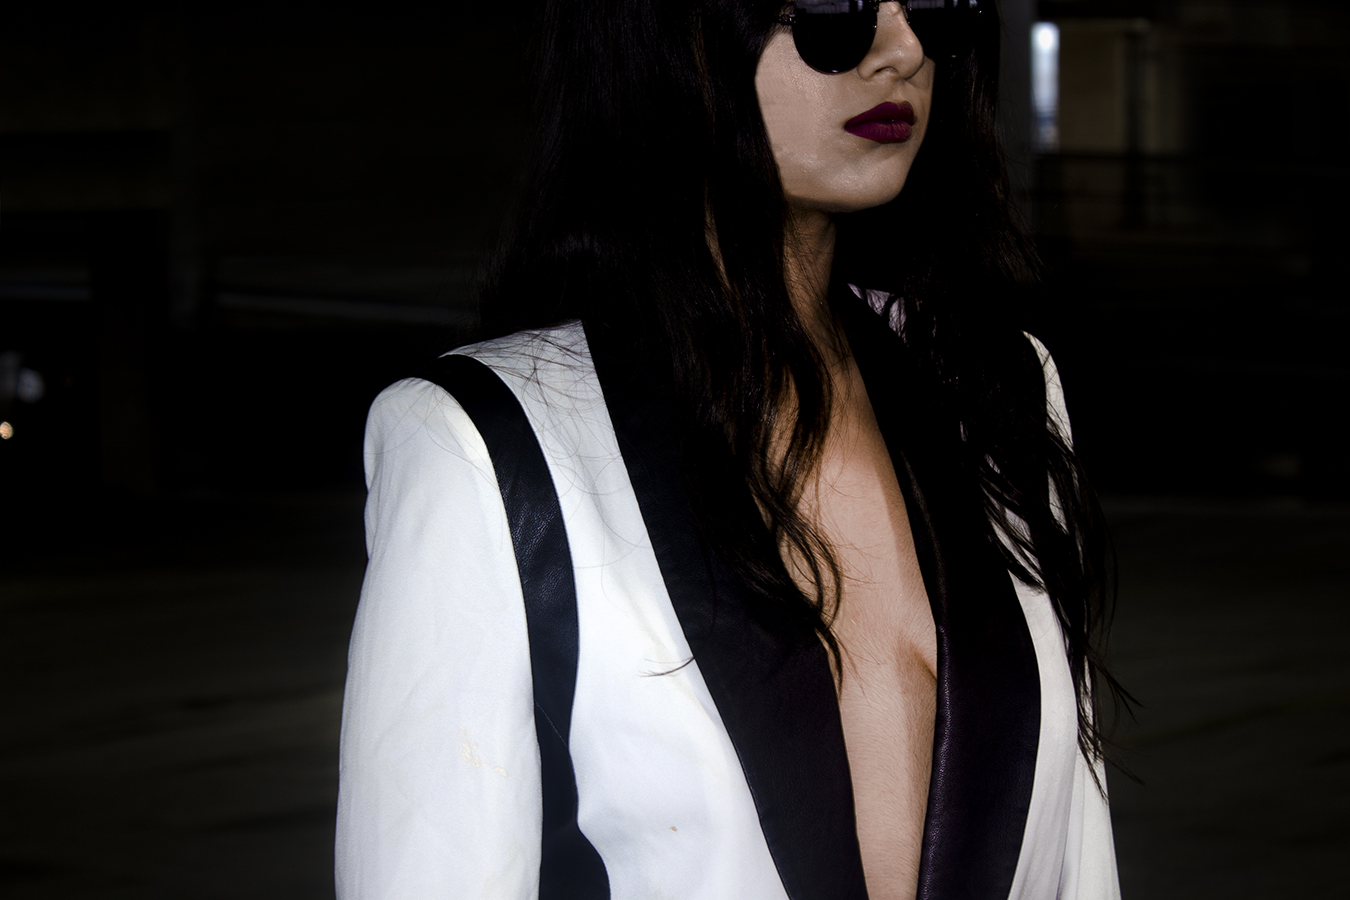 RIA_VAIDYA_EDITORIAL_FASHION_JACKET_COAT_SKY_GIRL_EDGE_SUNGLASSES_WHITE_BLACK_MONOCHROME_DEPTH